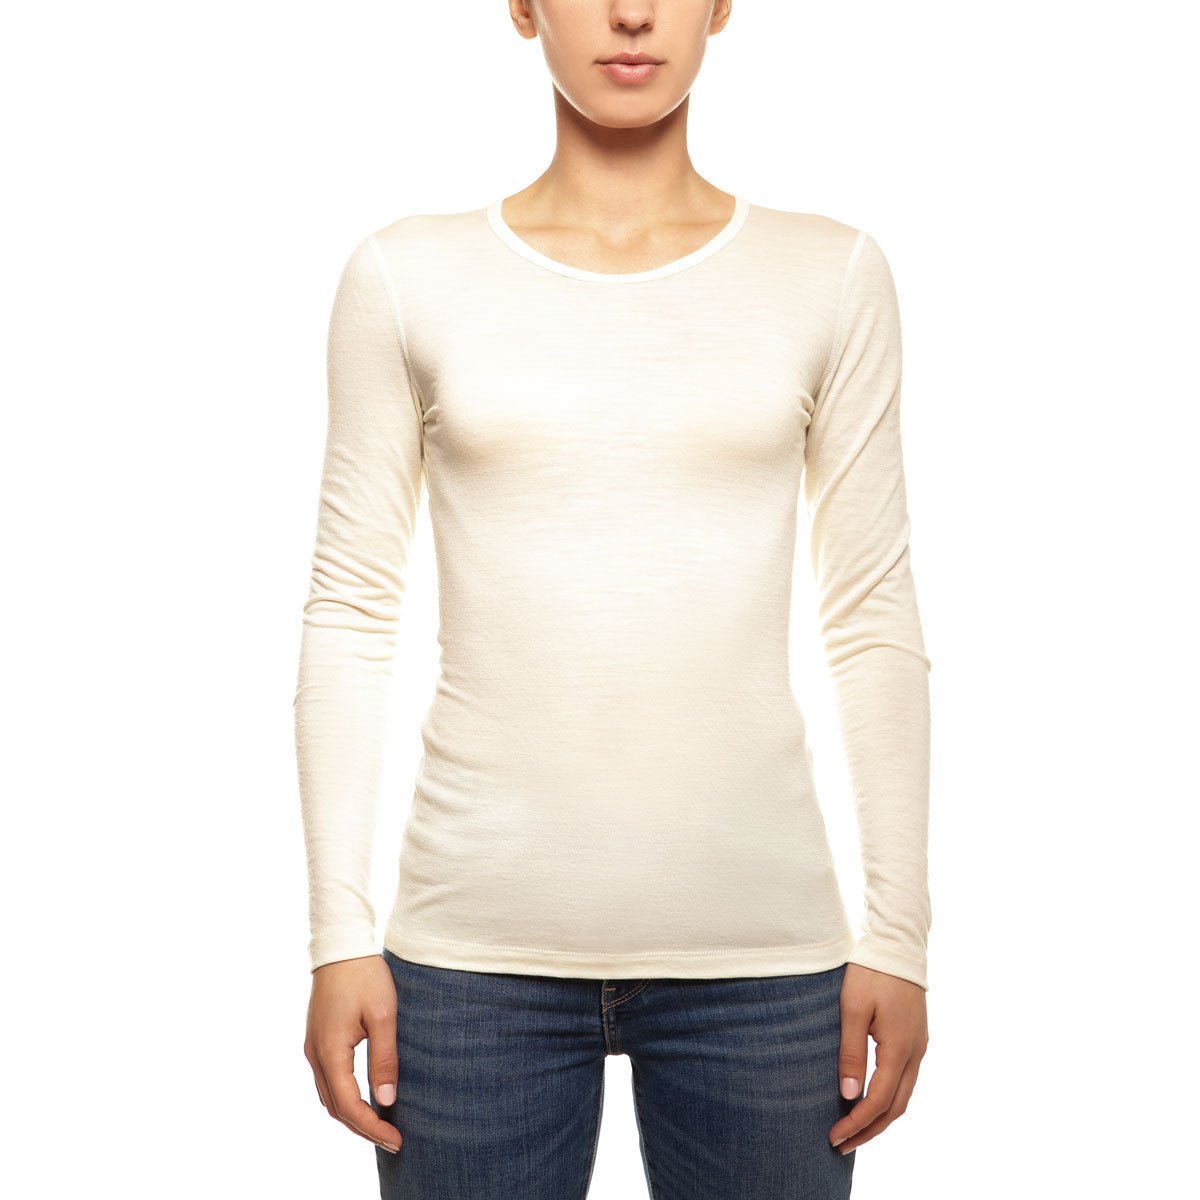 menique Women's Merino 160 Long Sleeve Crew Natural Color